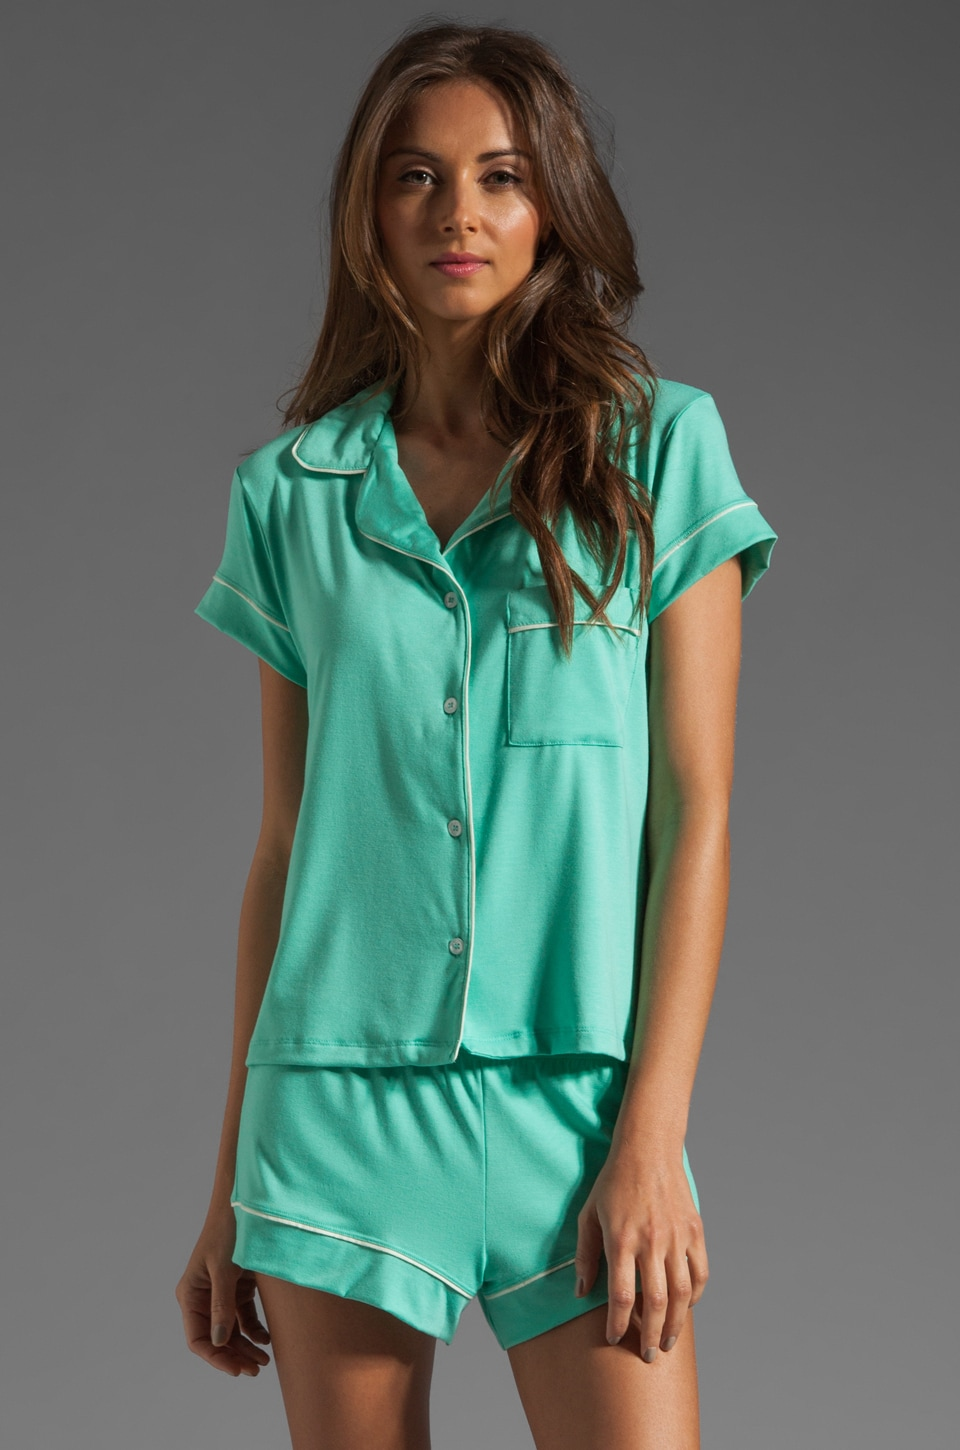 eberjey Gisele PJ's Short Top in Spearmint